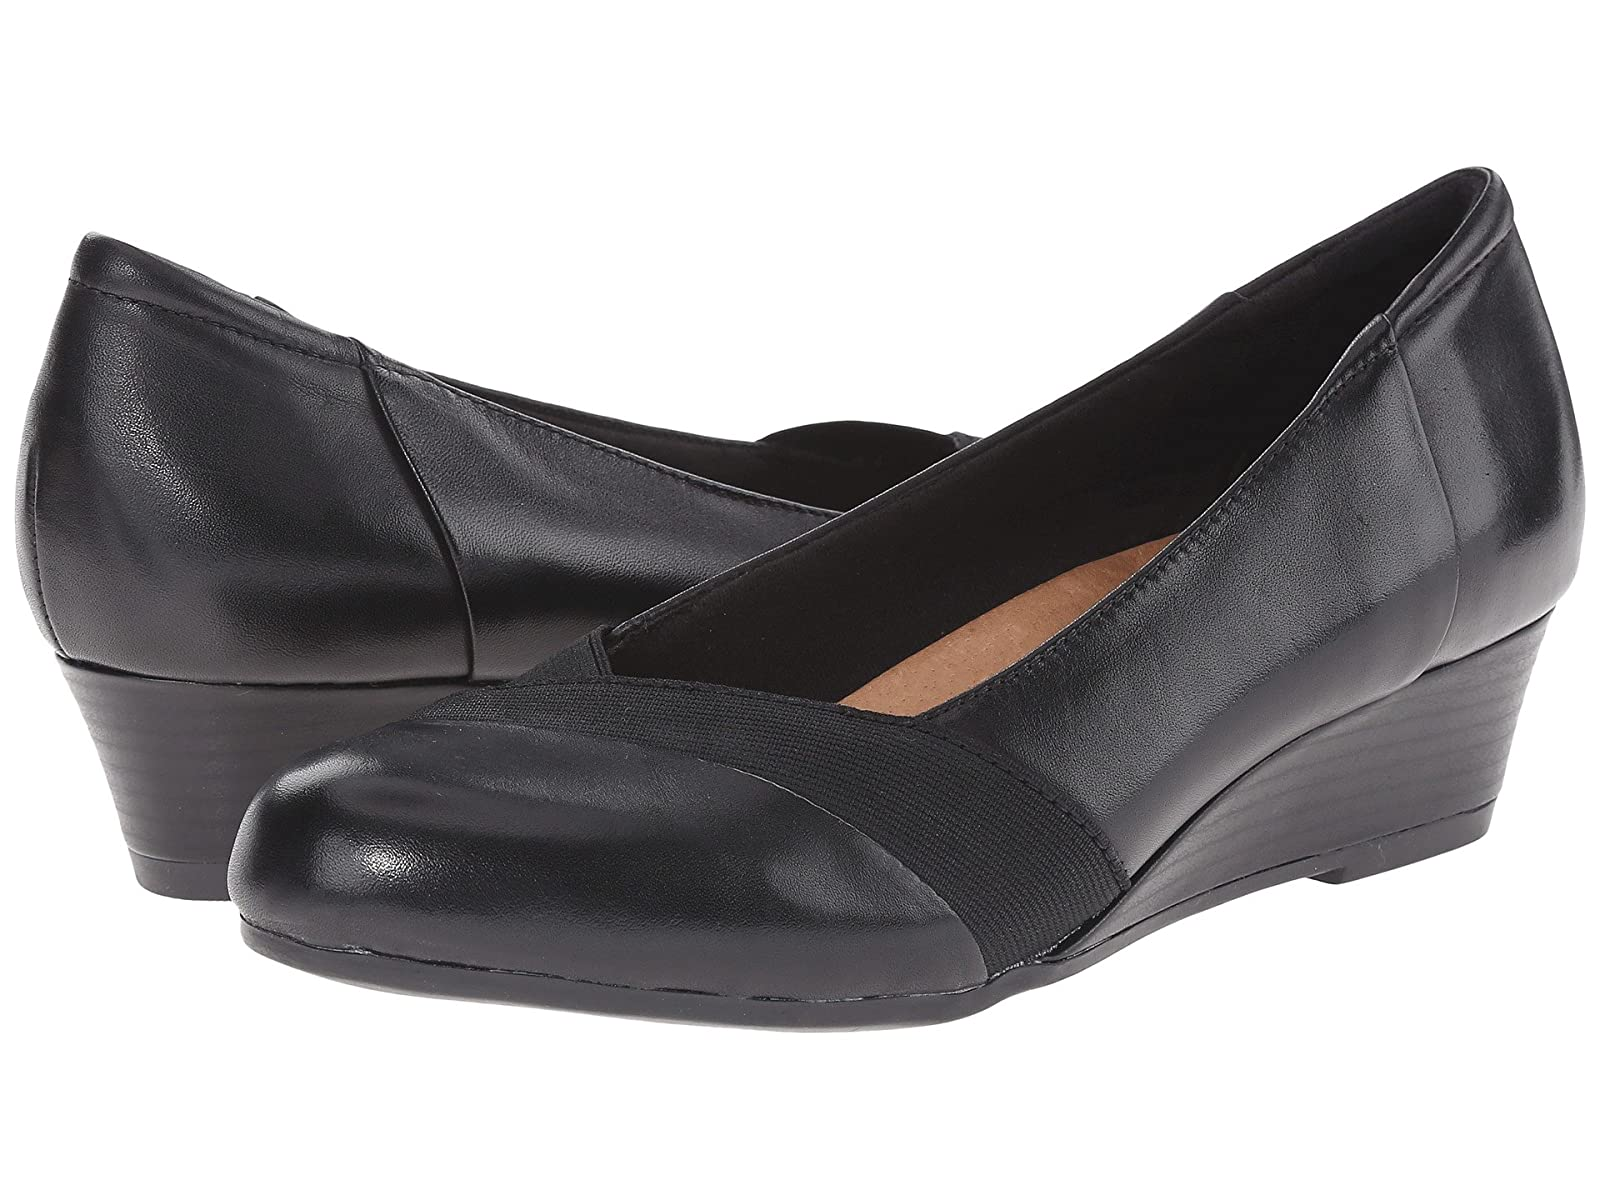 Earth ElderberryCheap and distinctive eye-catching shoes